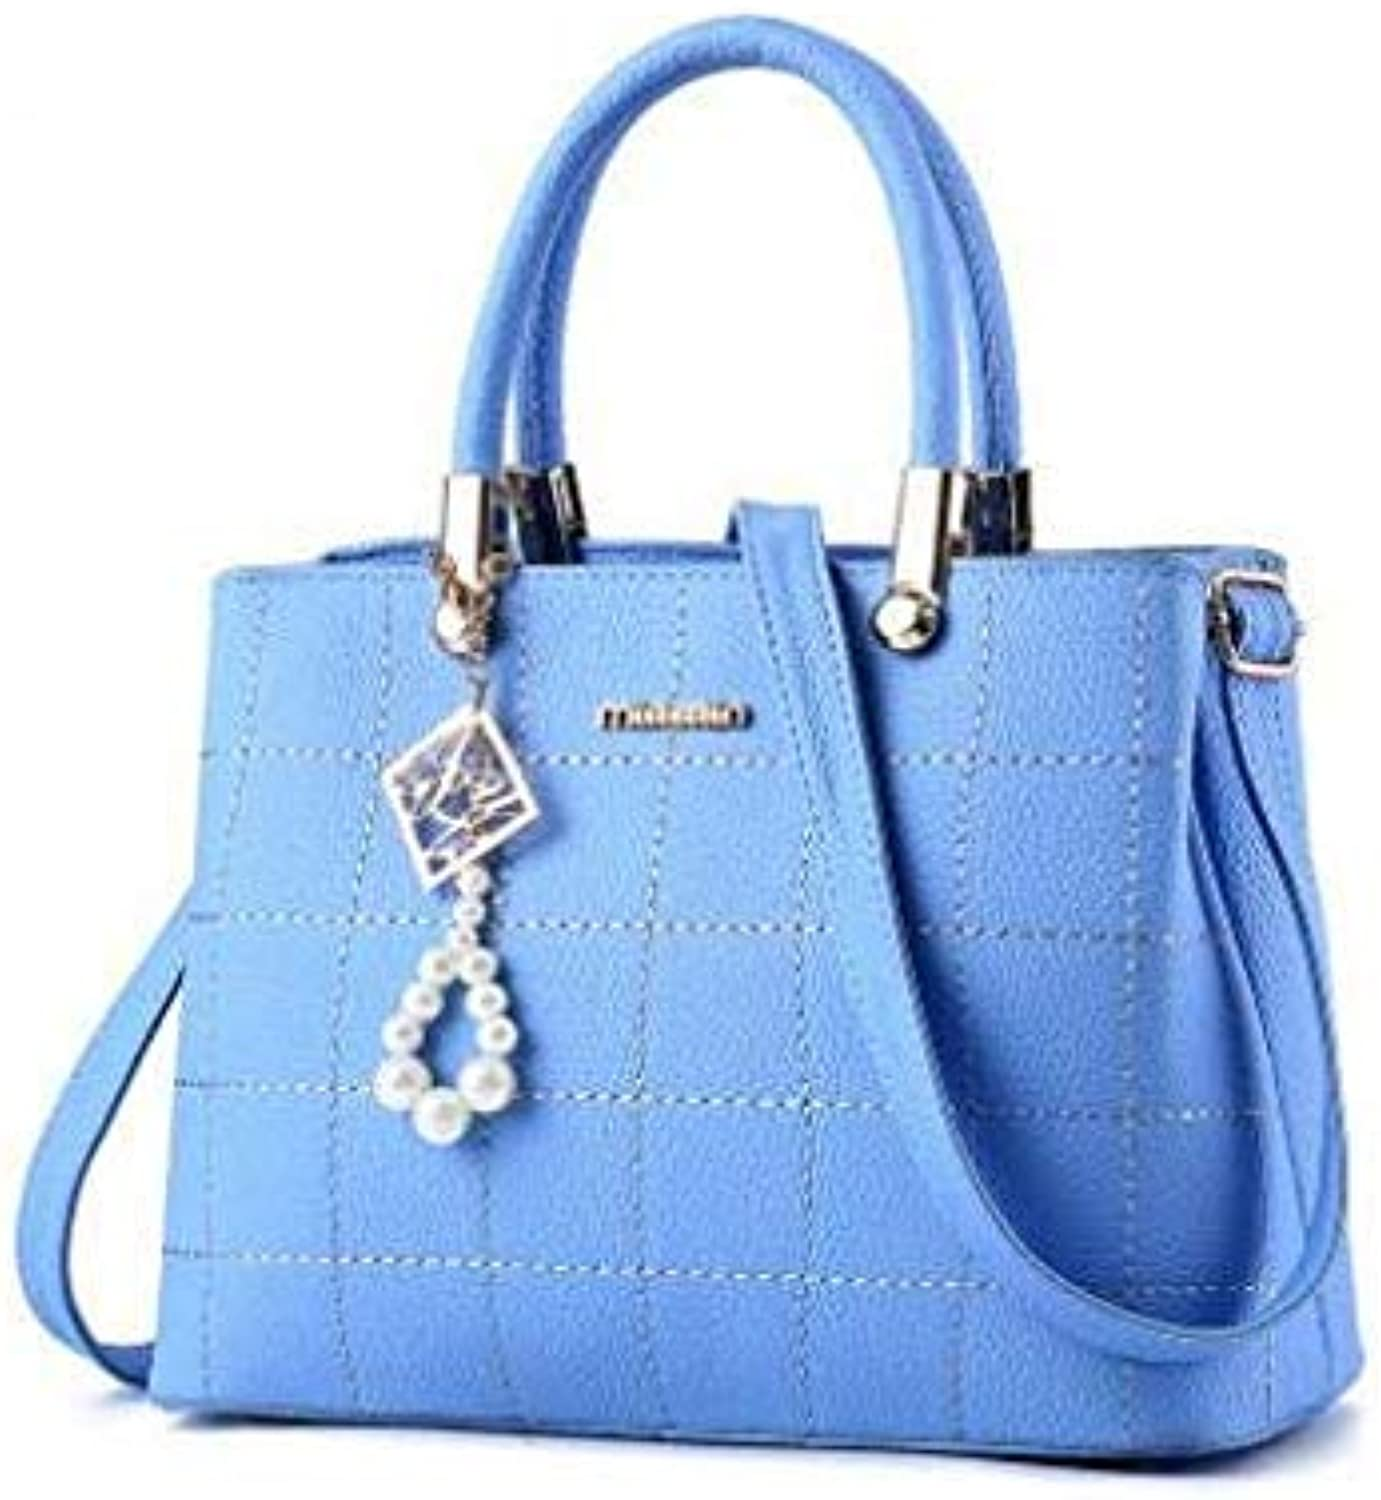 Bloomerang Women Handbags Ladies Leather Commuter Office Ring Tote Bags High Quality Women's Shouder Bags Famous Ladys Flap Bags L8-50 color Sky blueee